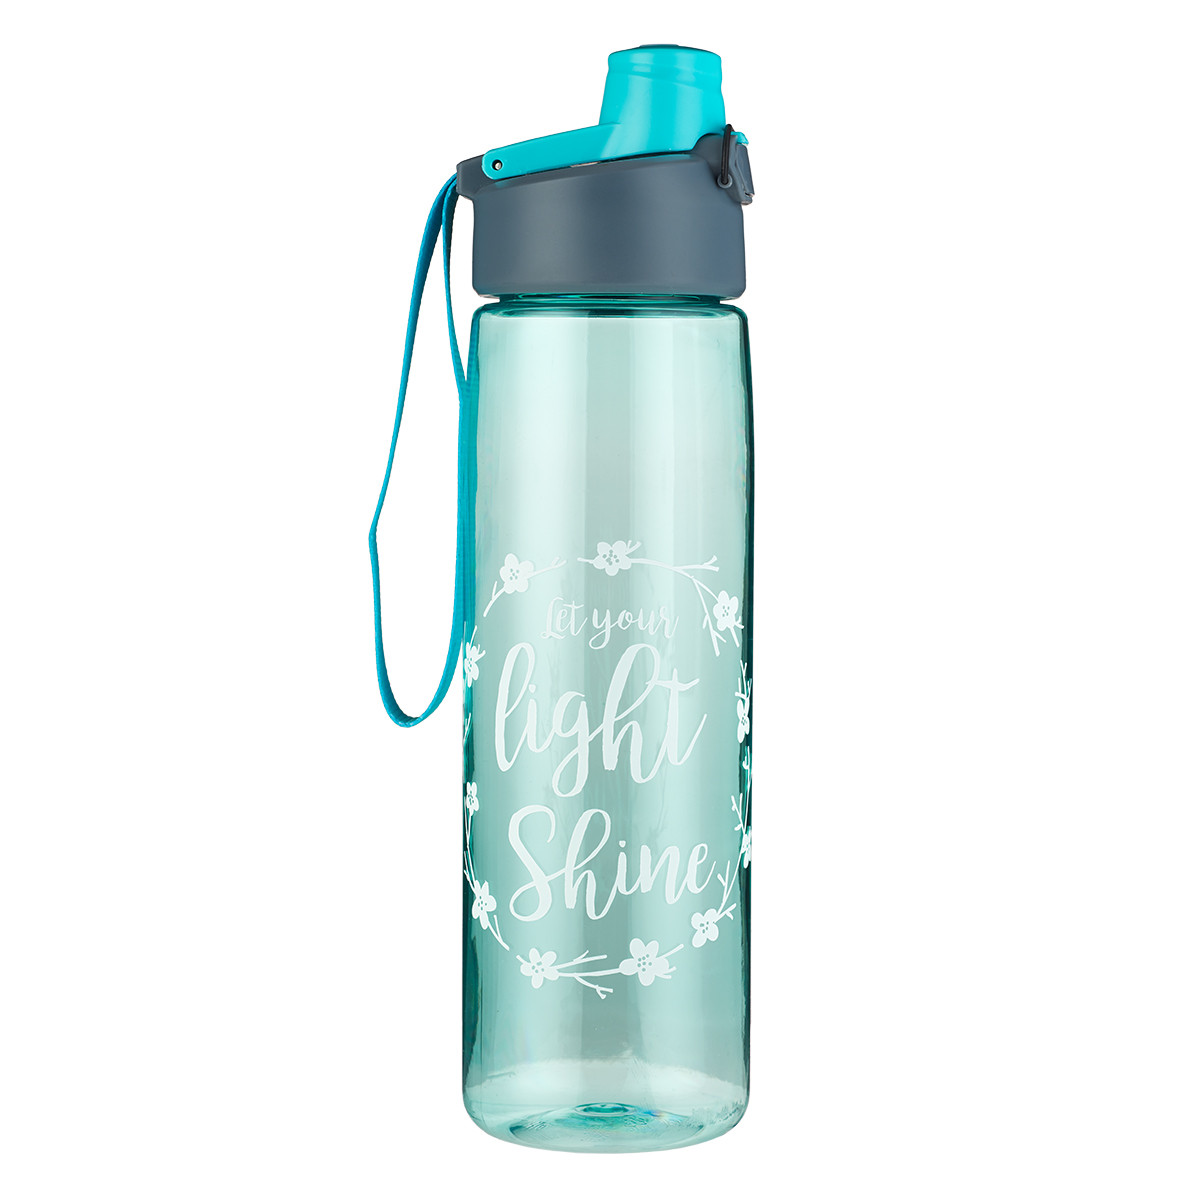 Water Bottle In Spanish: Plastic Water Bottle: Let Your Light Shine In Teal